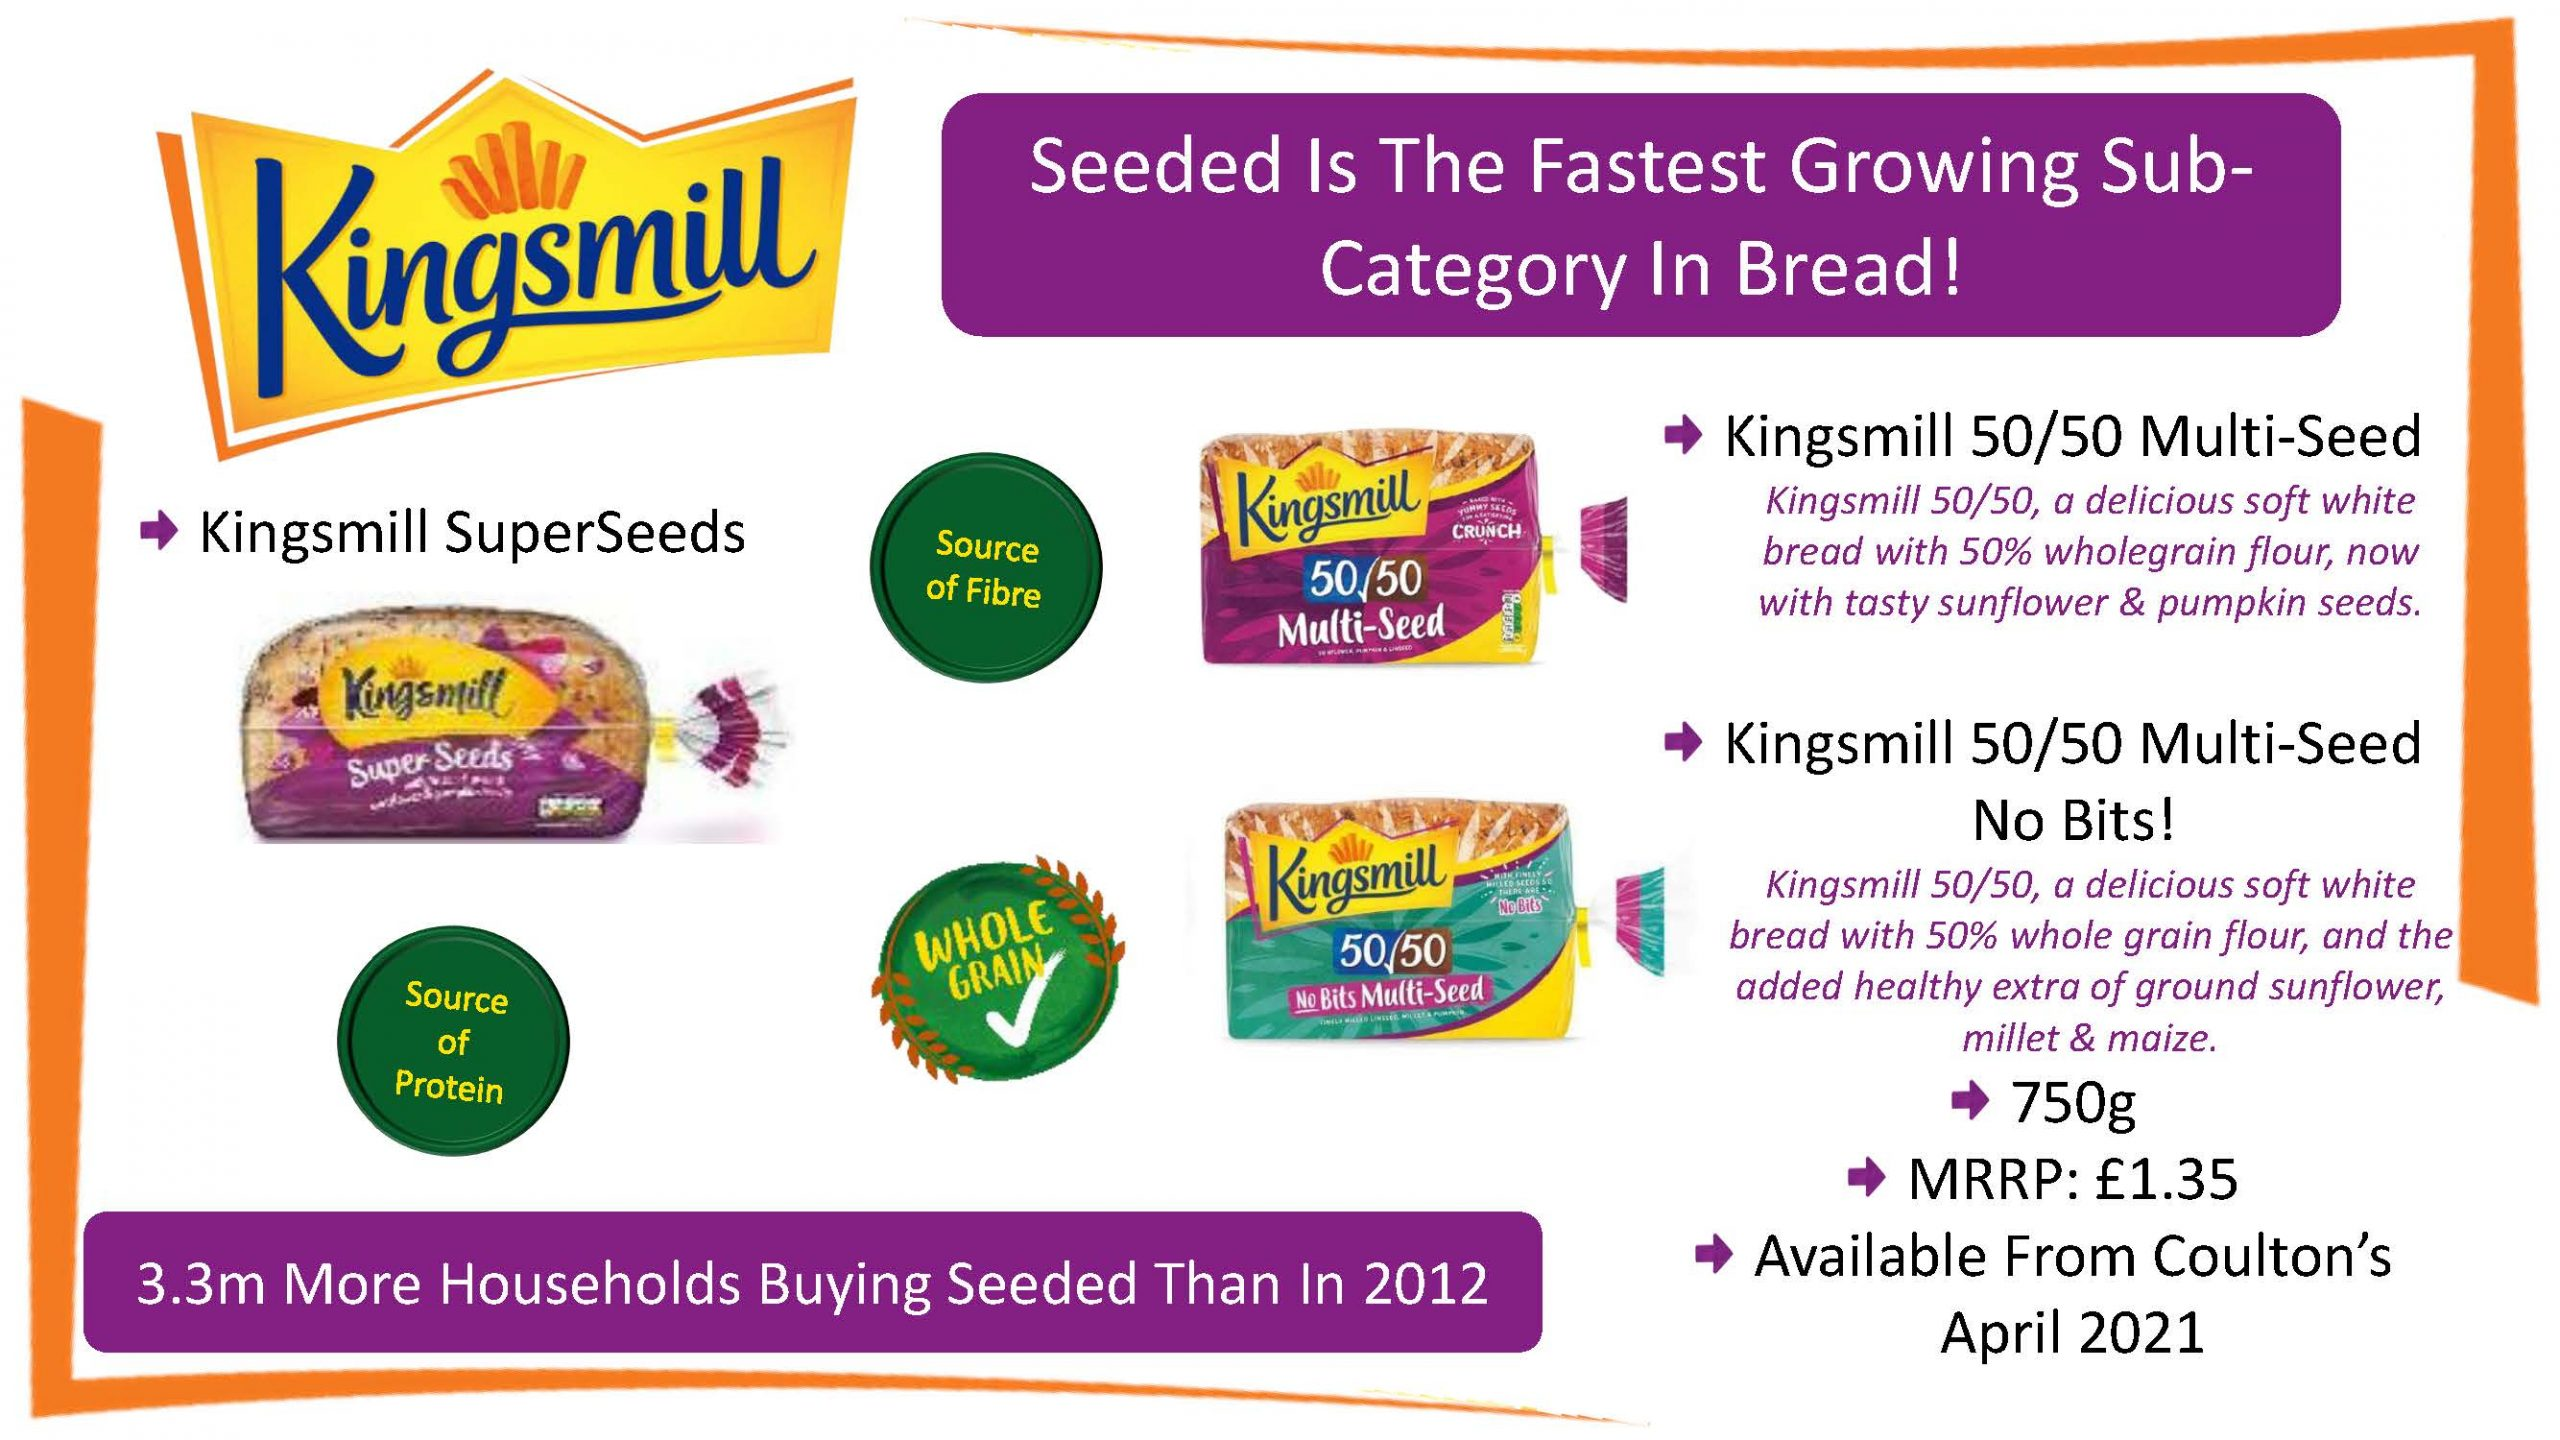 Kingsmill seeded Fibre